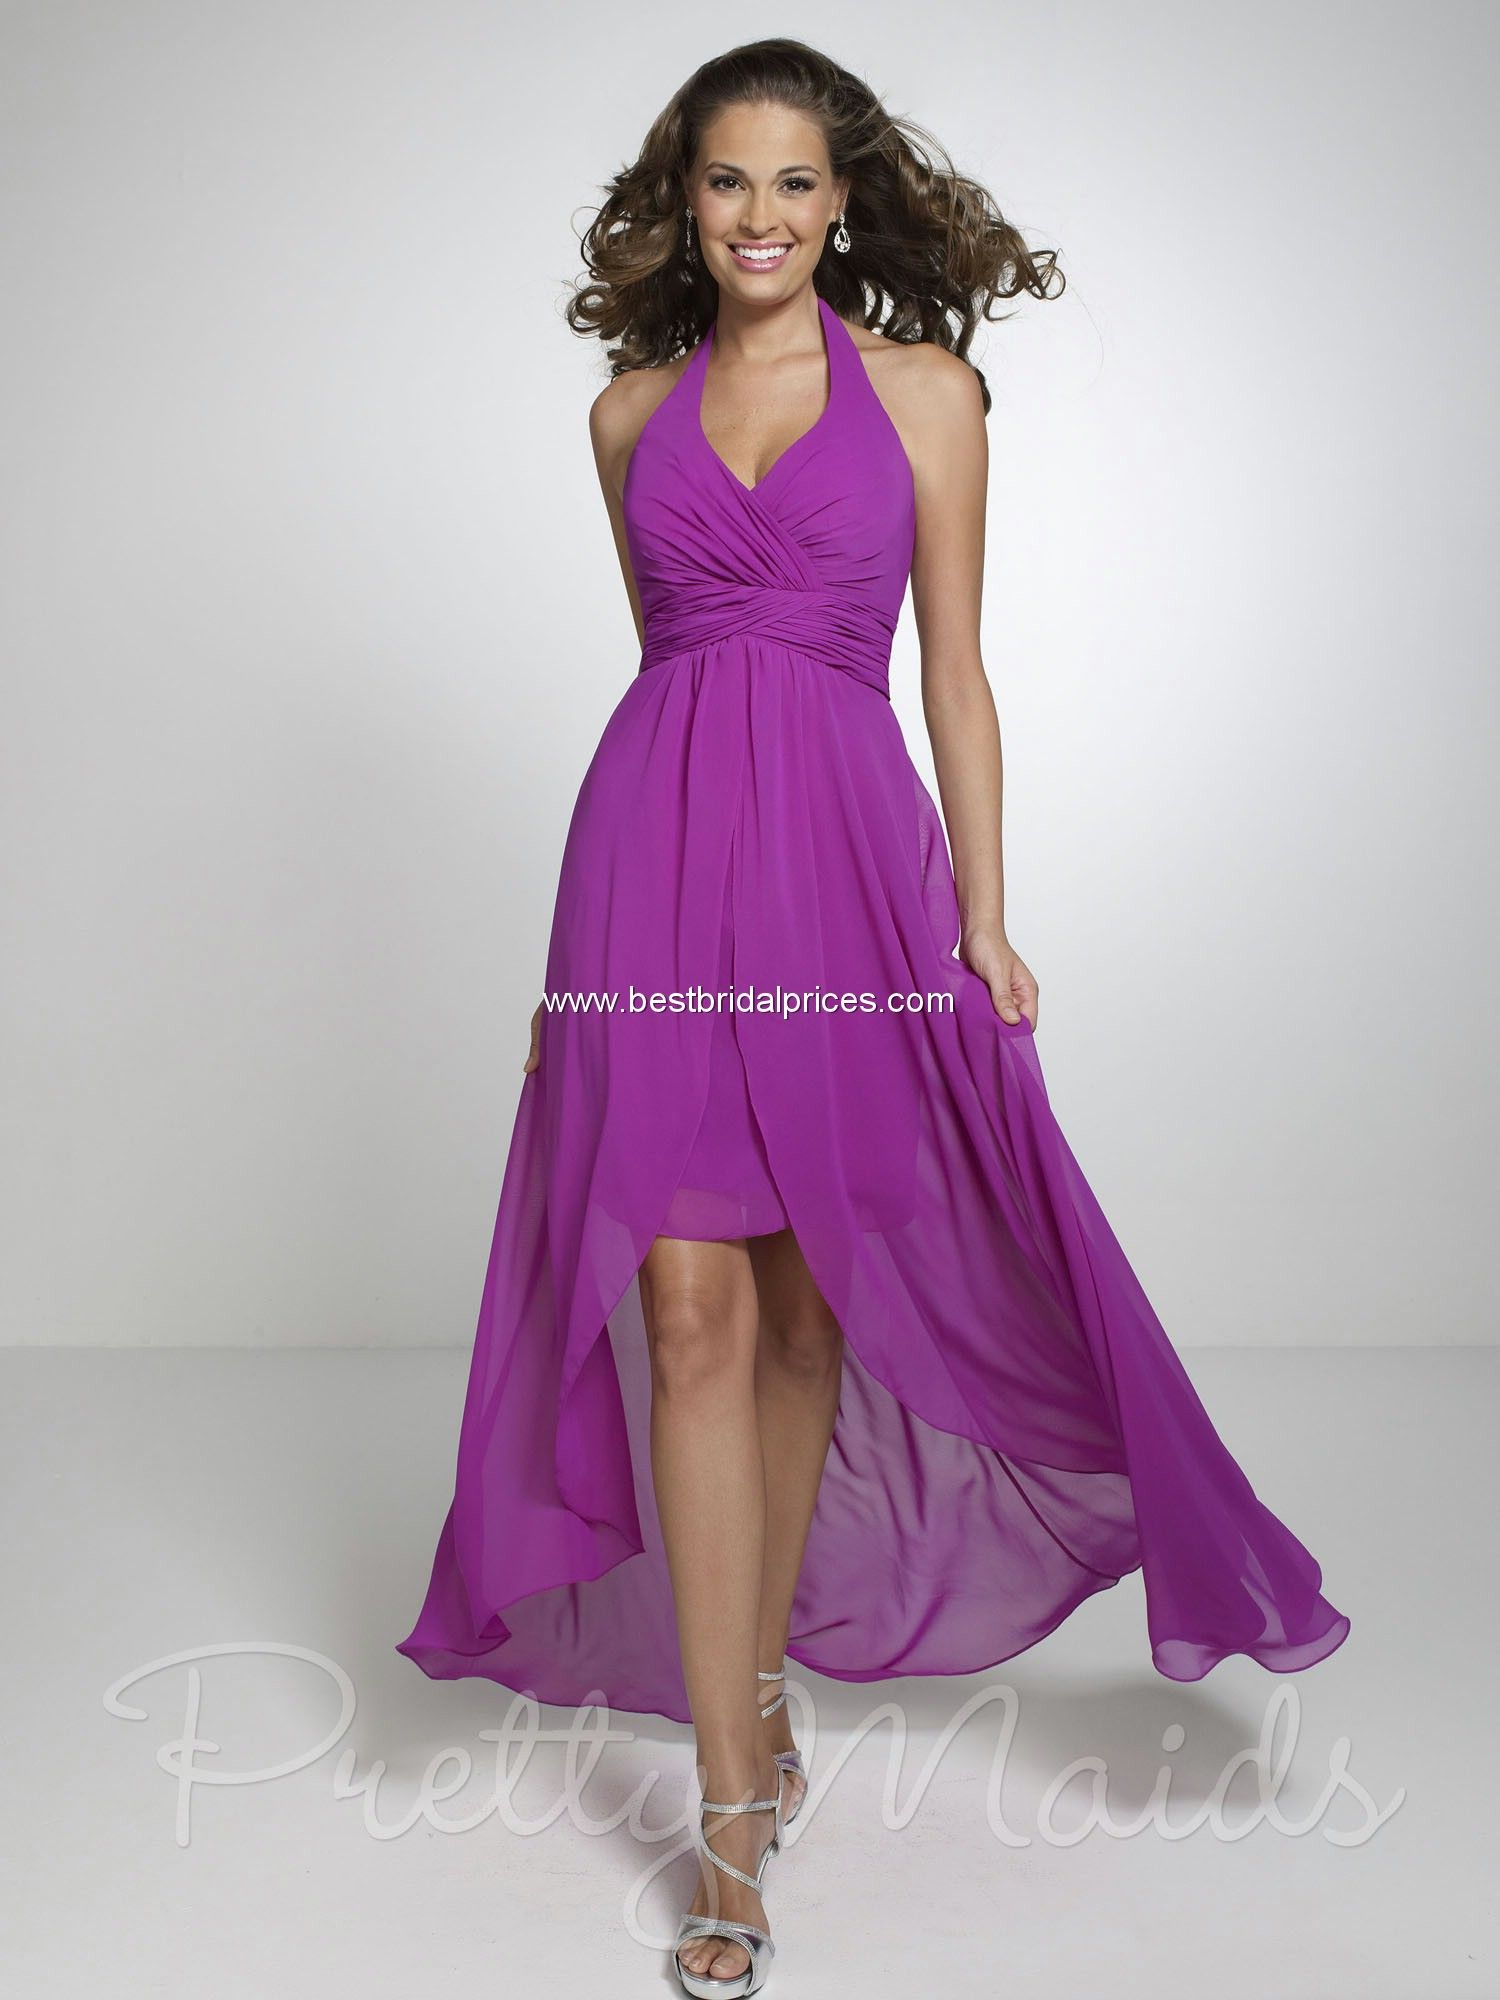 Discount alfred angelo bridesmaid dresses vosoi hi low pretty maids bridesmaid dresses style 22532 i may ombrellifo Choice Image